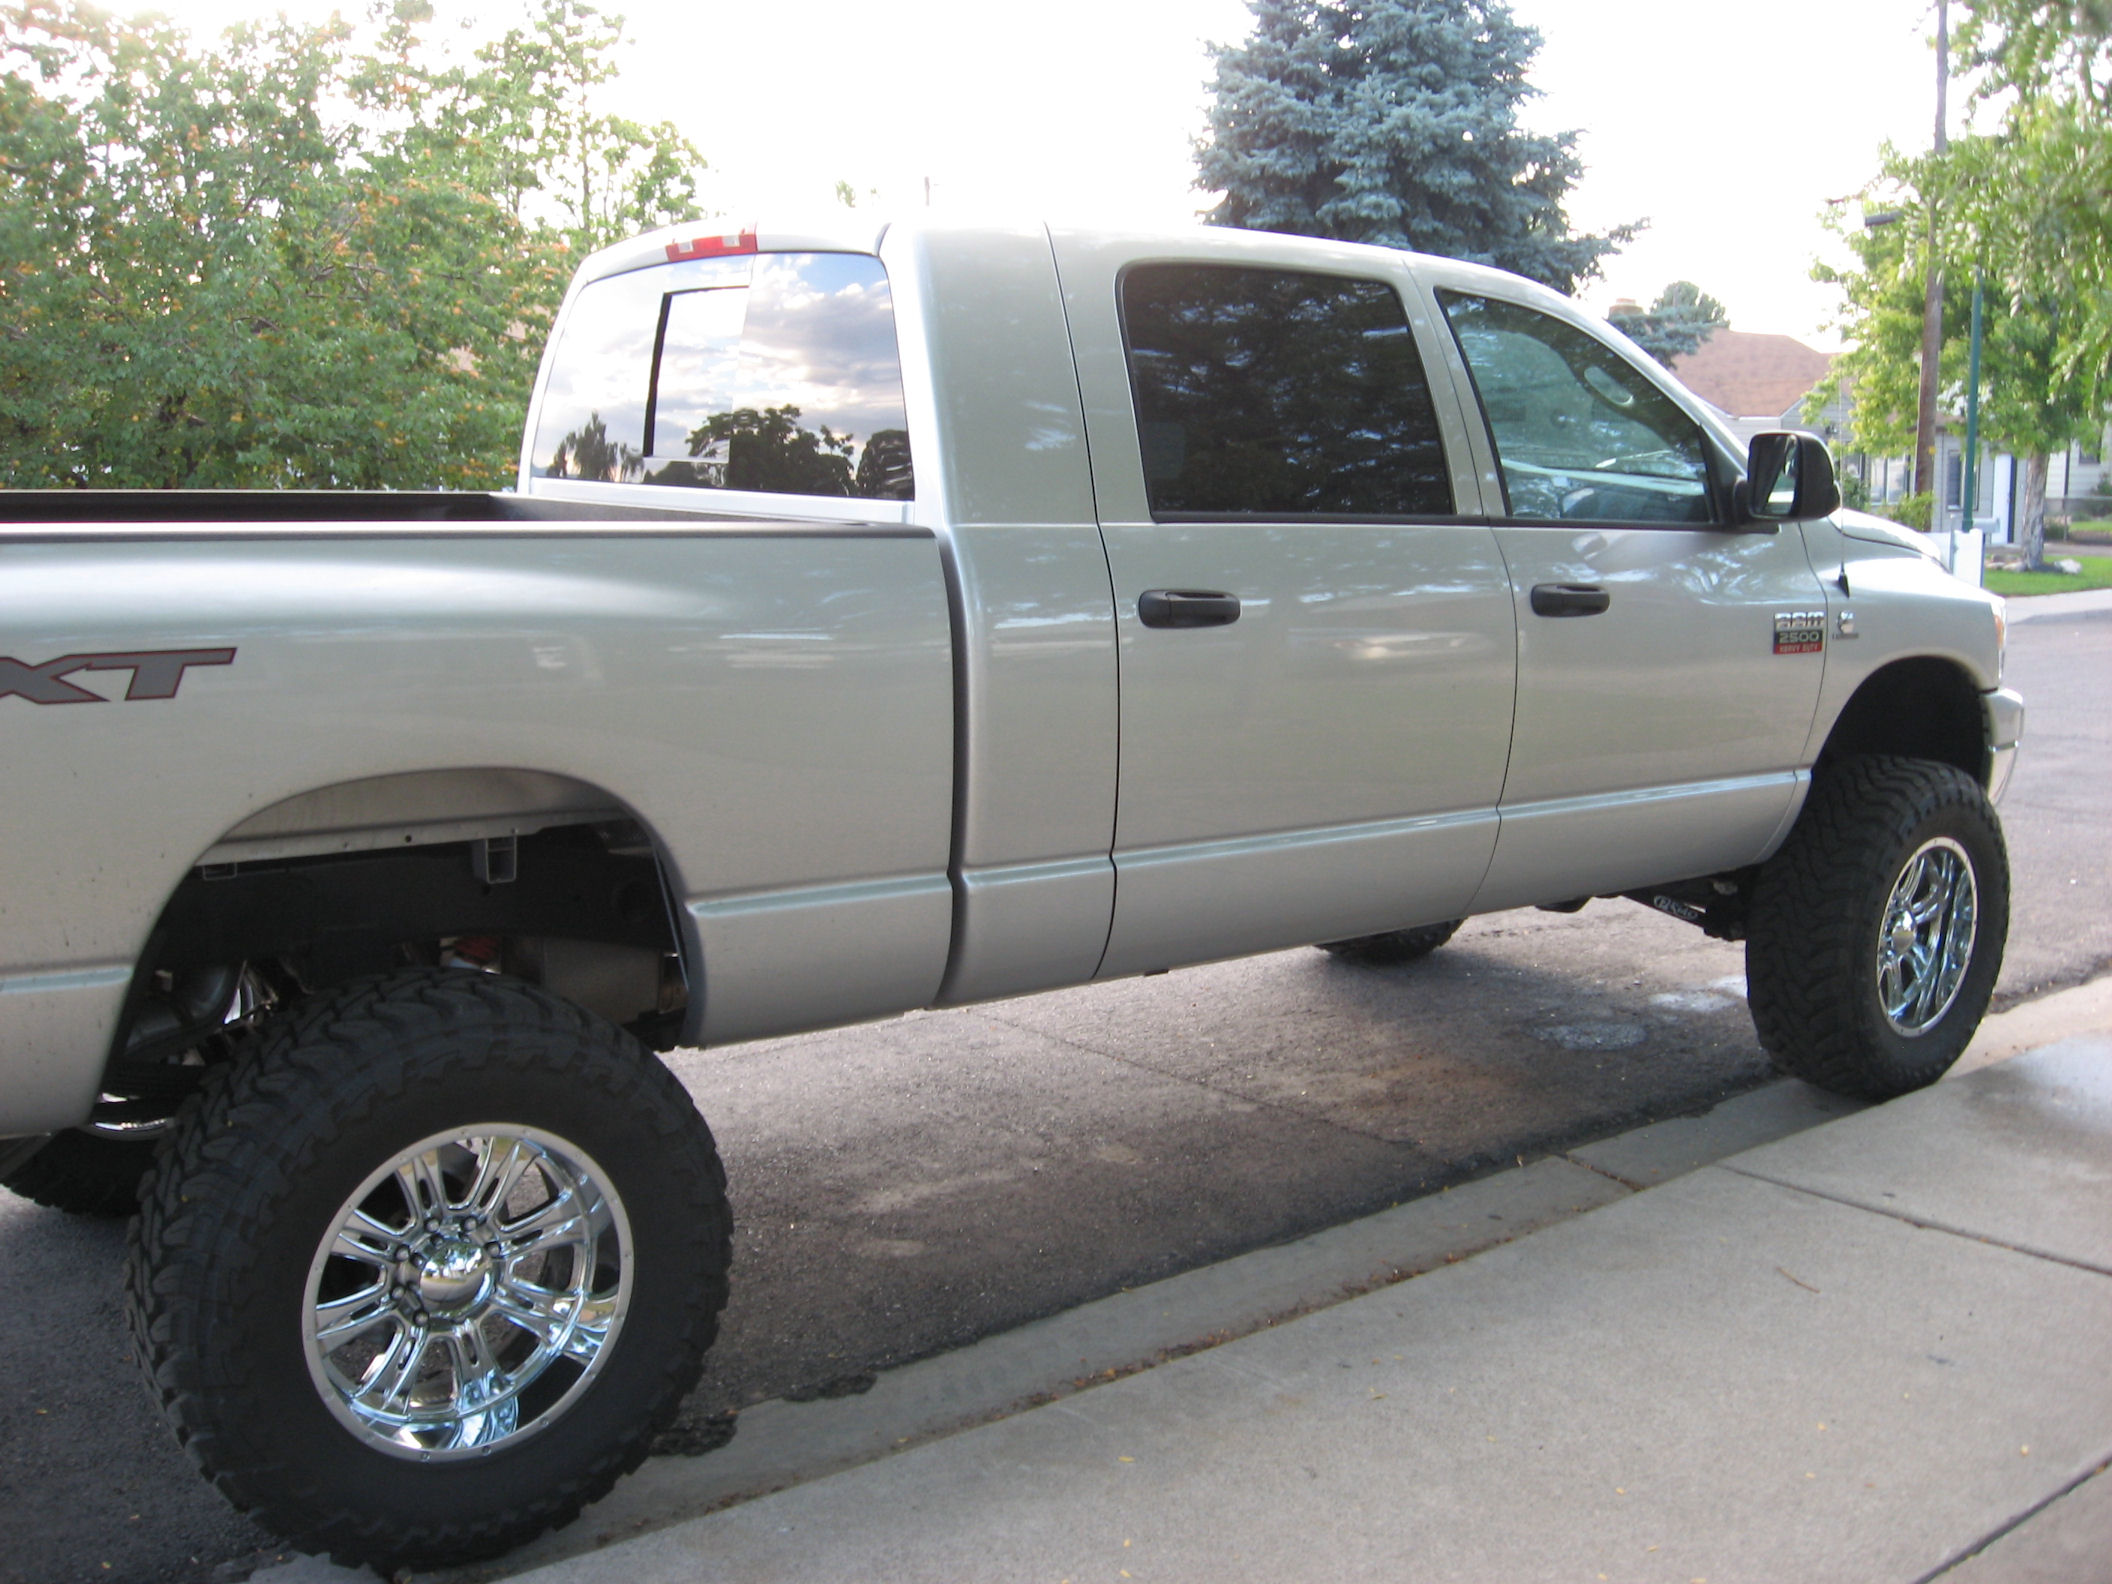 2008 Dodge Mega Cab 2500 - Dodge Cummins Diesel Forum